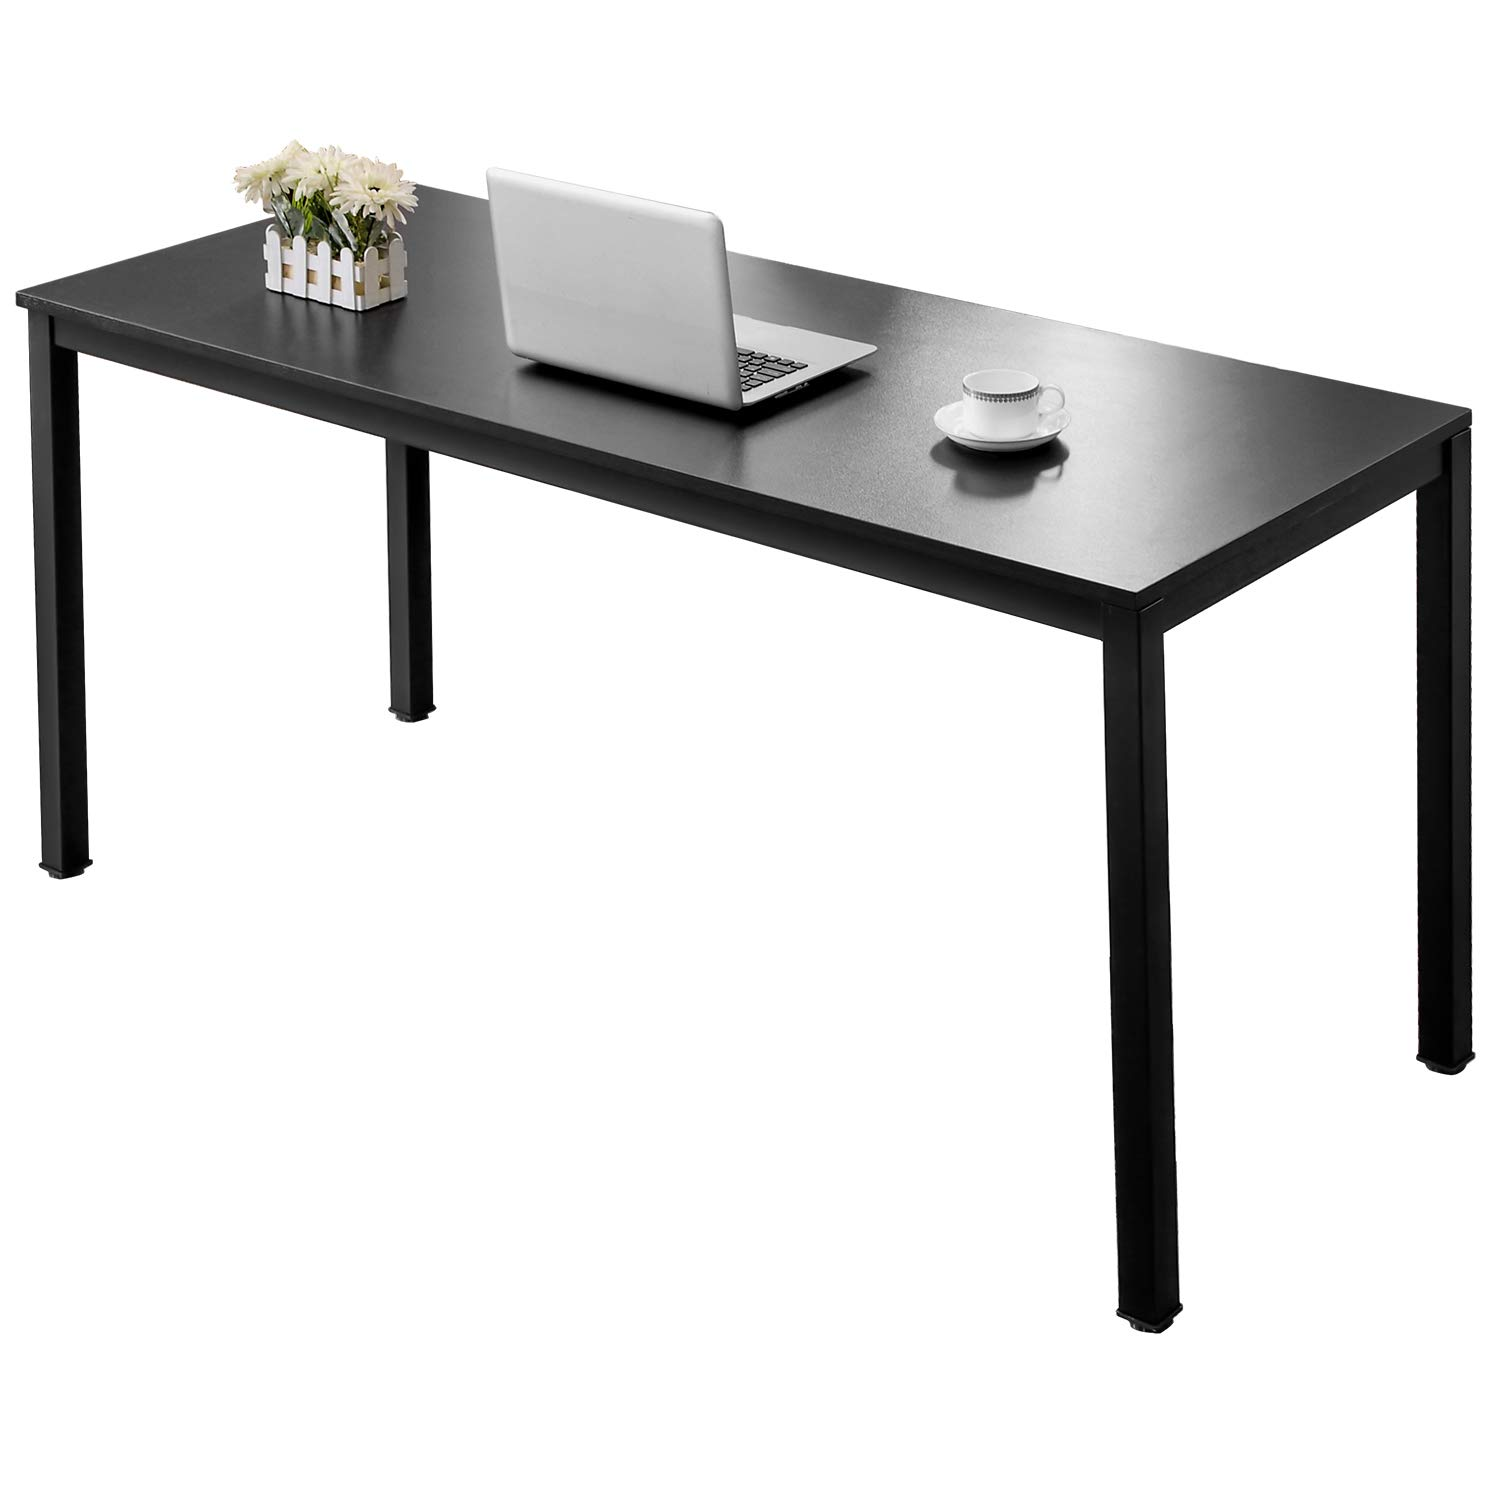 AUXLEY Computer Desk Modern Simple Office Writing Desk for Home Office, Double Deck Wood and Metal Office Table (60'', Black)